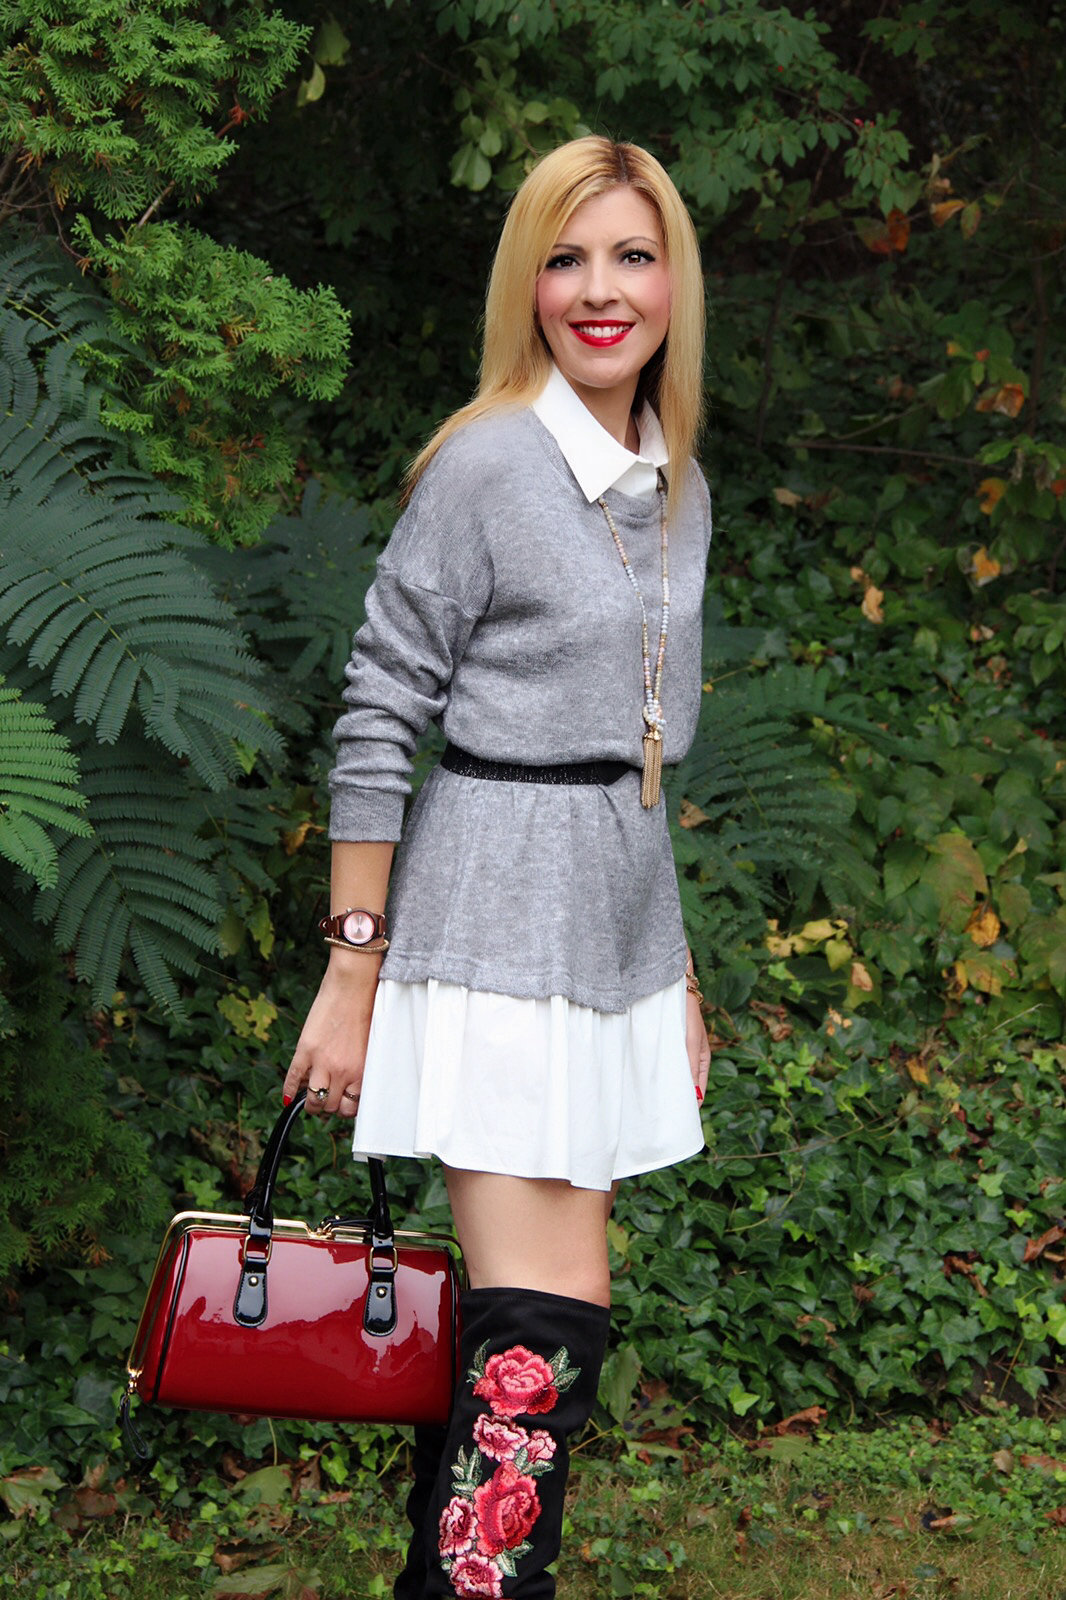 """My bag is from Mad Style and you can find it  here . You might remember it because I blogged about it several times before. I use it often as my everyday bag. My watch is another favorite and often blogged about piece called """"Crush"""" and you can find it  here ."""